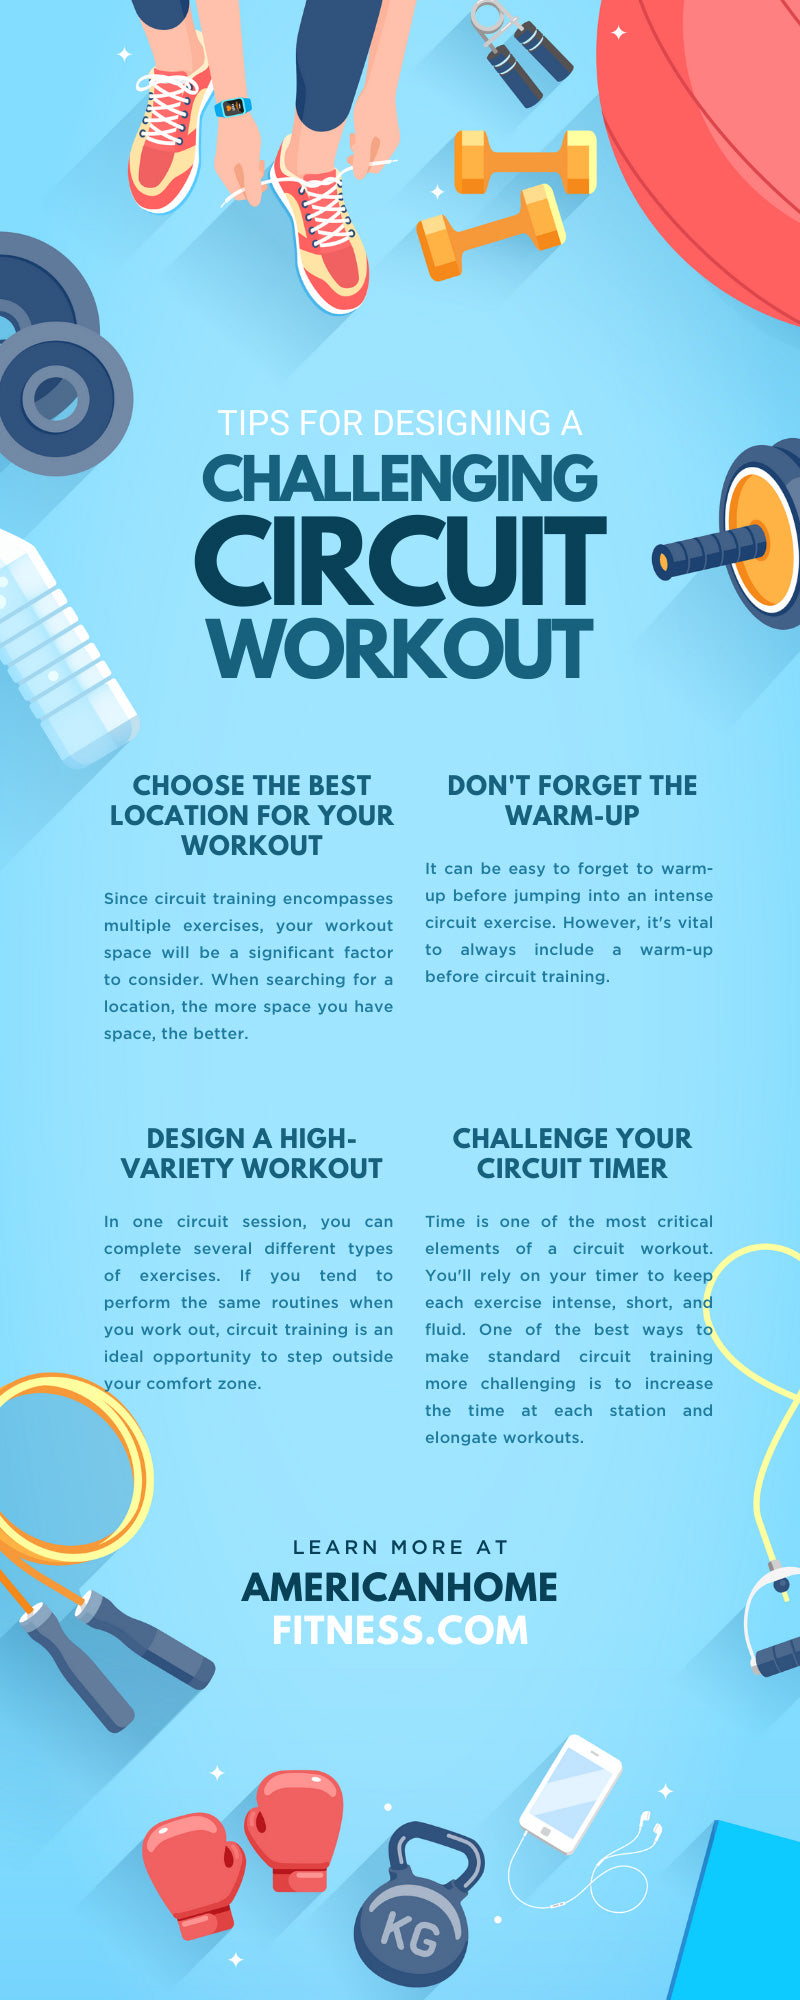 Tips For Designing a Challenging Circuit Workout